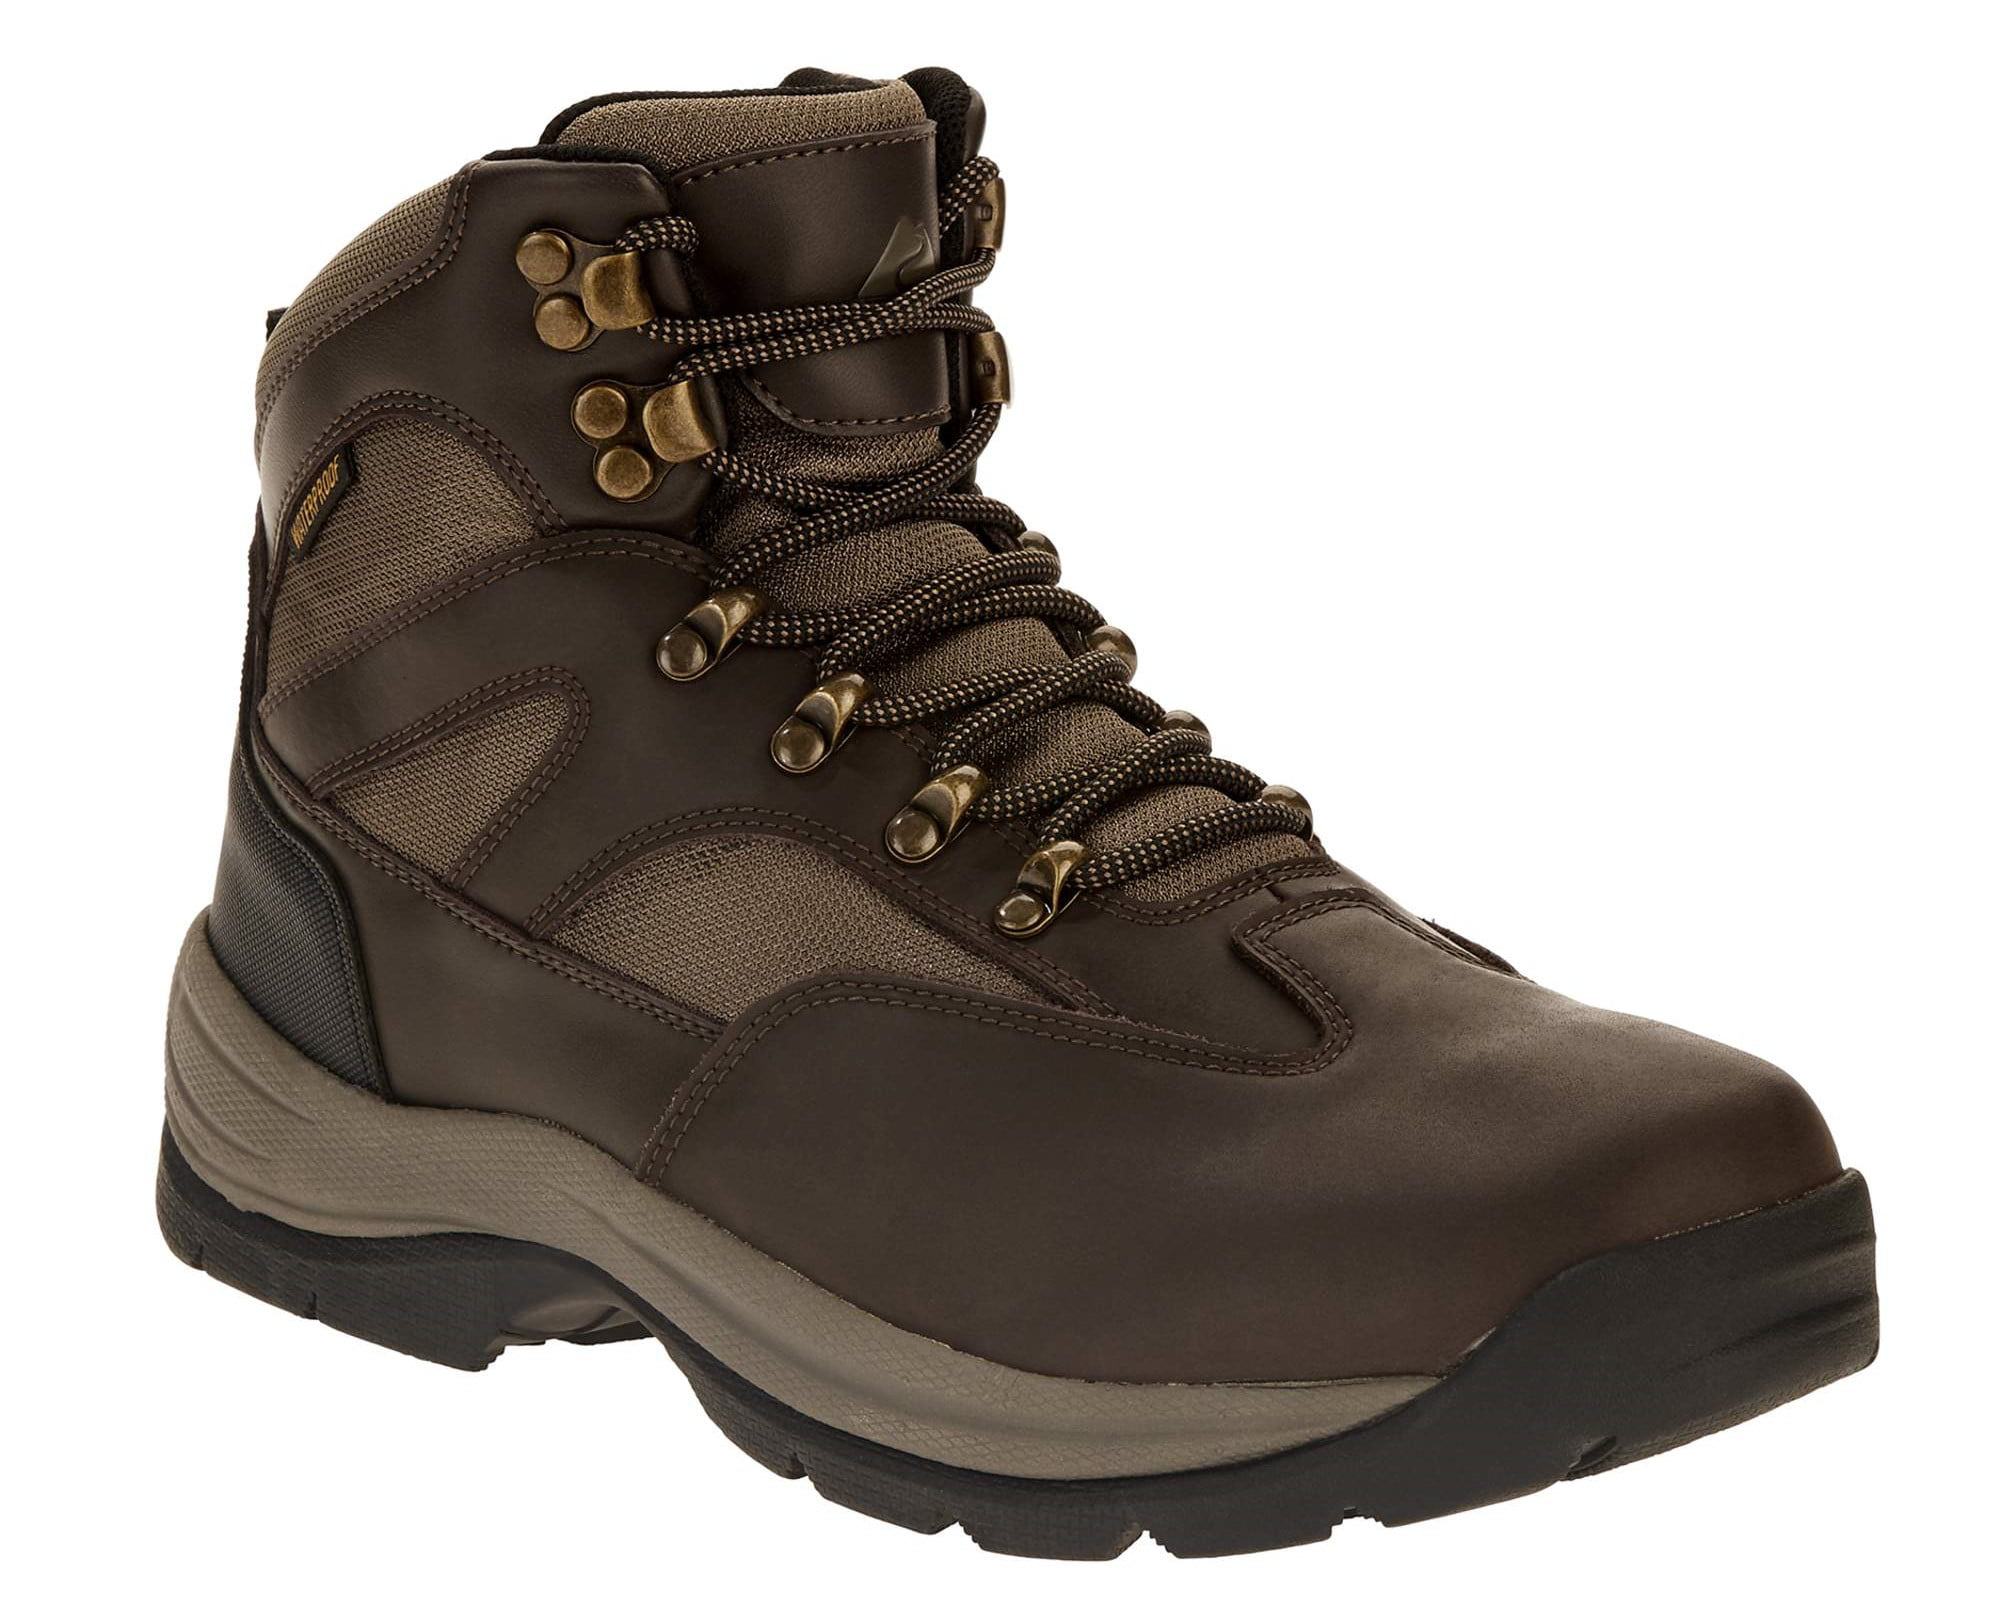 6f5e63374fe Ozark Trail Men's Bronte II Mid Waterproof Hiking Boot